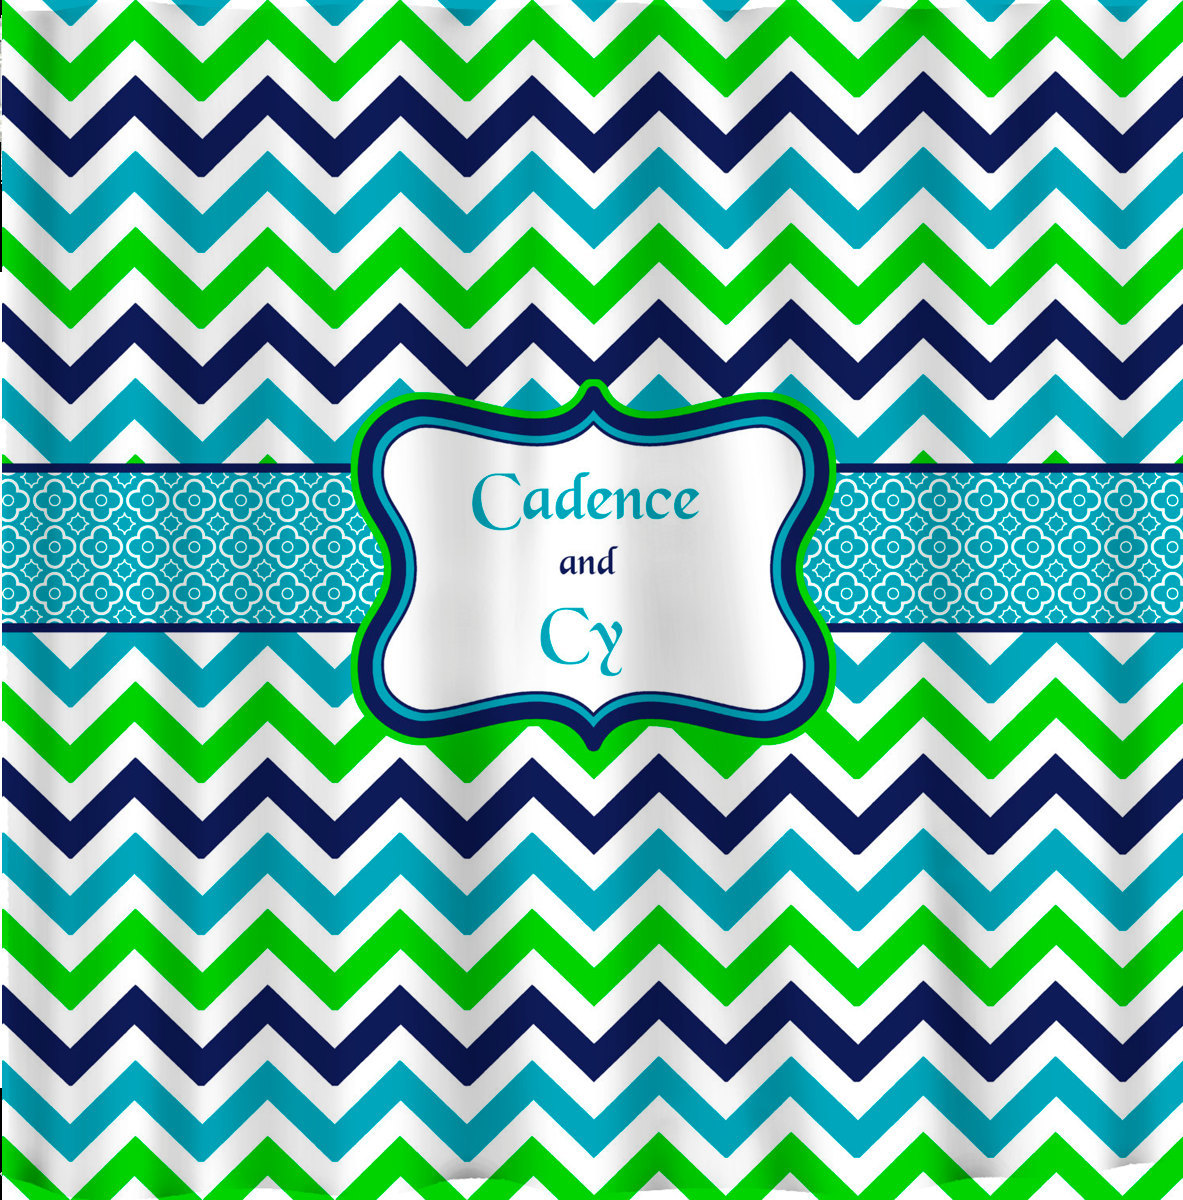 Shower Curtain - Multi Color Lime, Navy, Turquoise and White - Accent Any colors